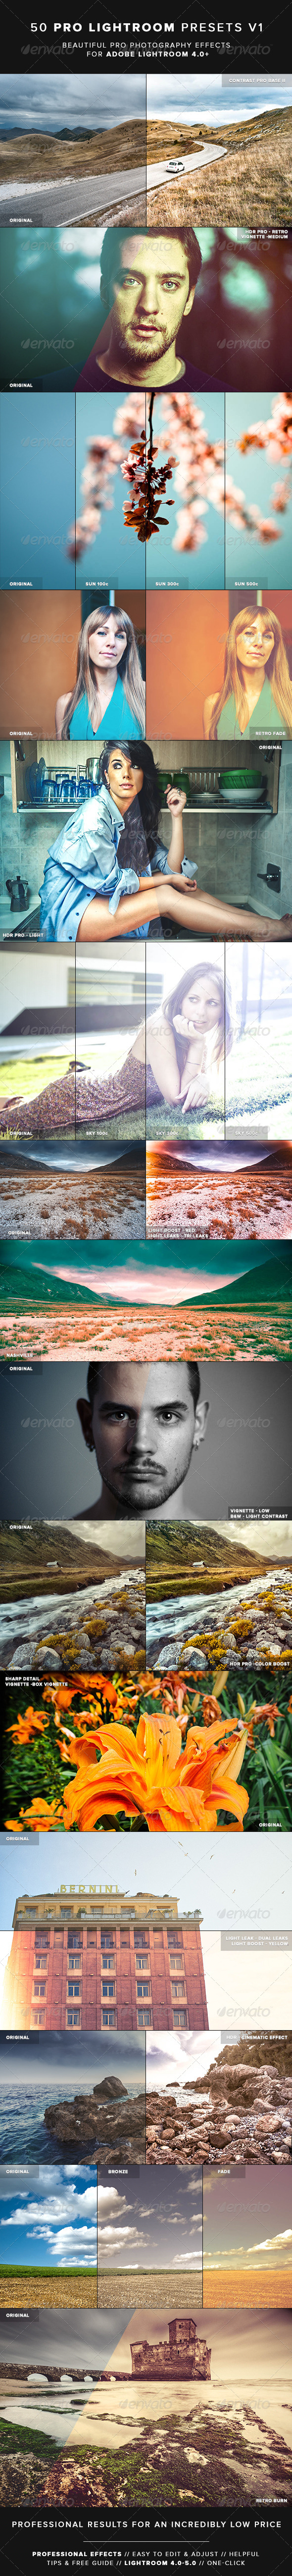 50 Pro Lightroom Presets V1 - Lightroom Presets Add-ons